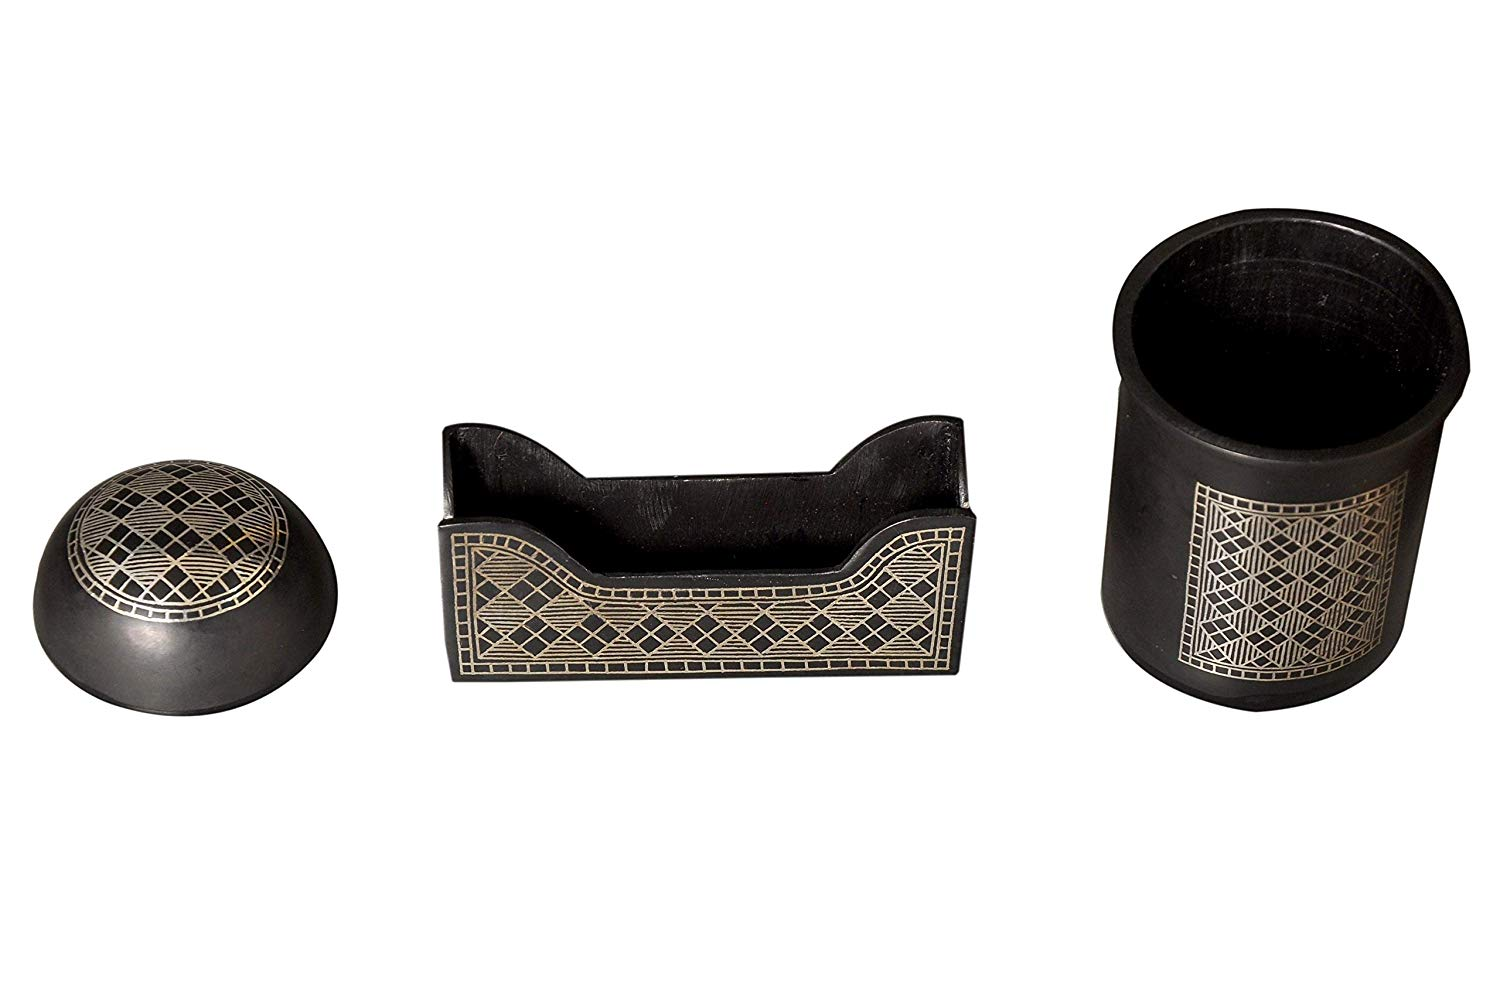 Bidri Art Work Office Table Accessories Handcrafted in Pure Silver.